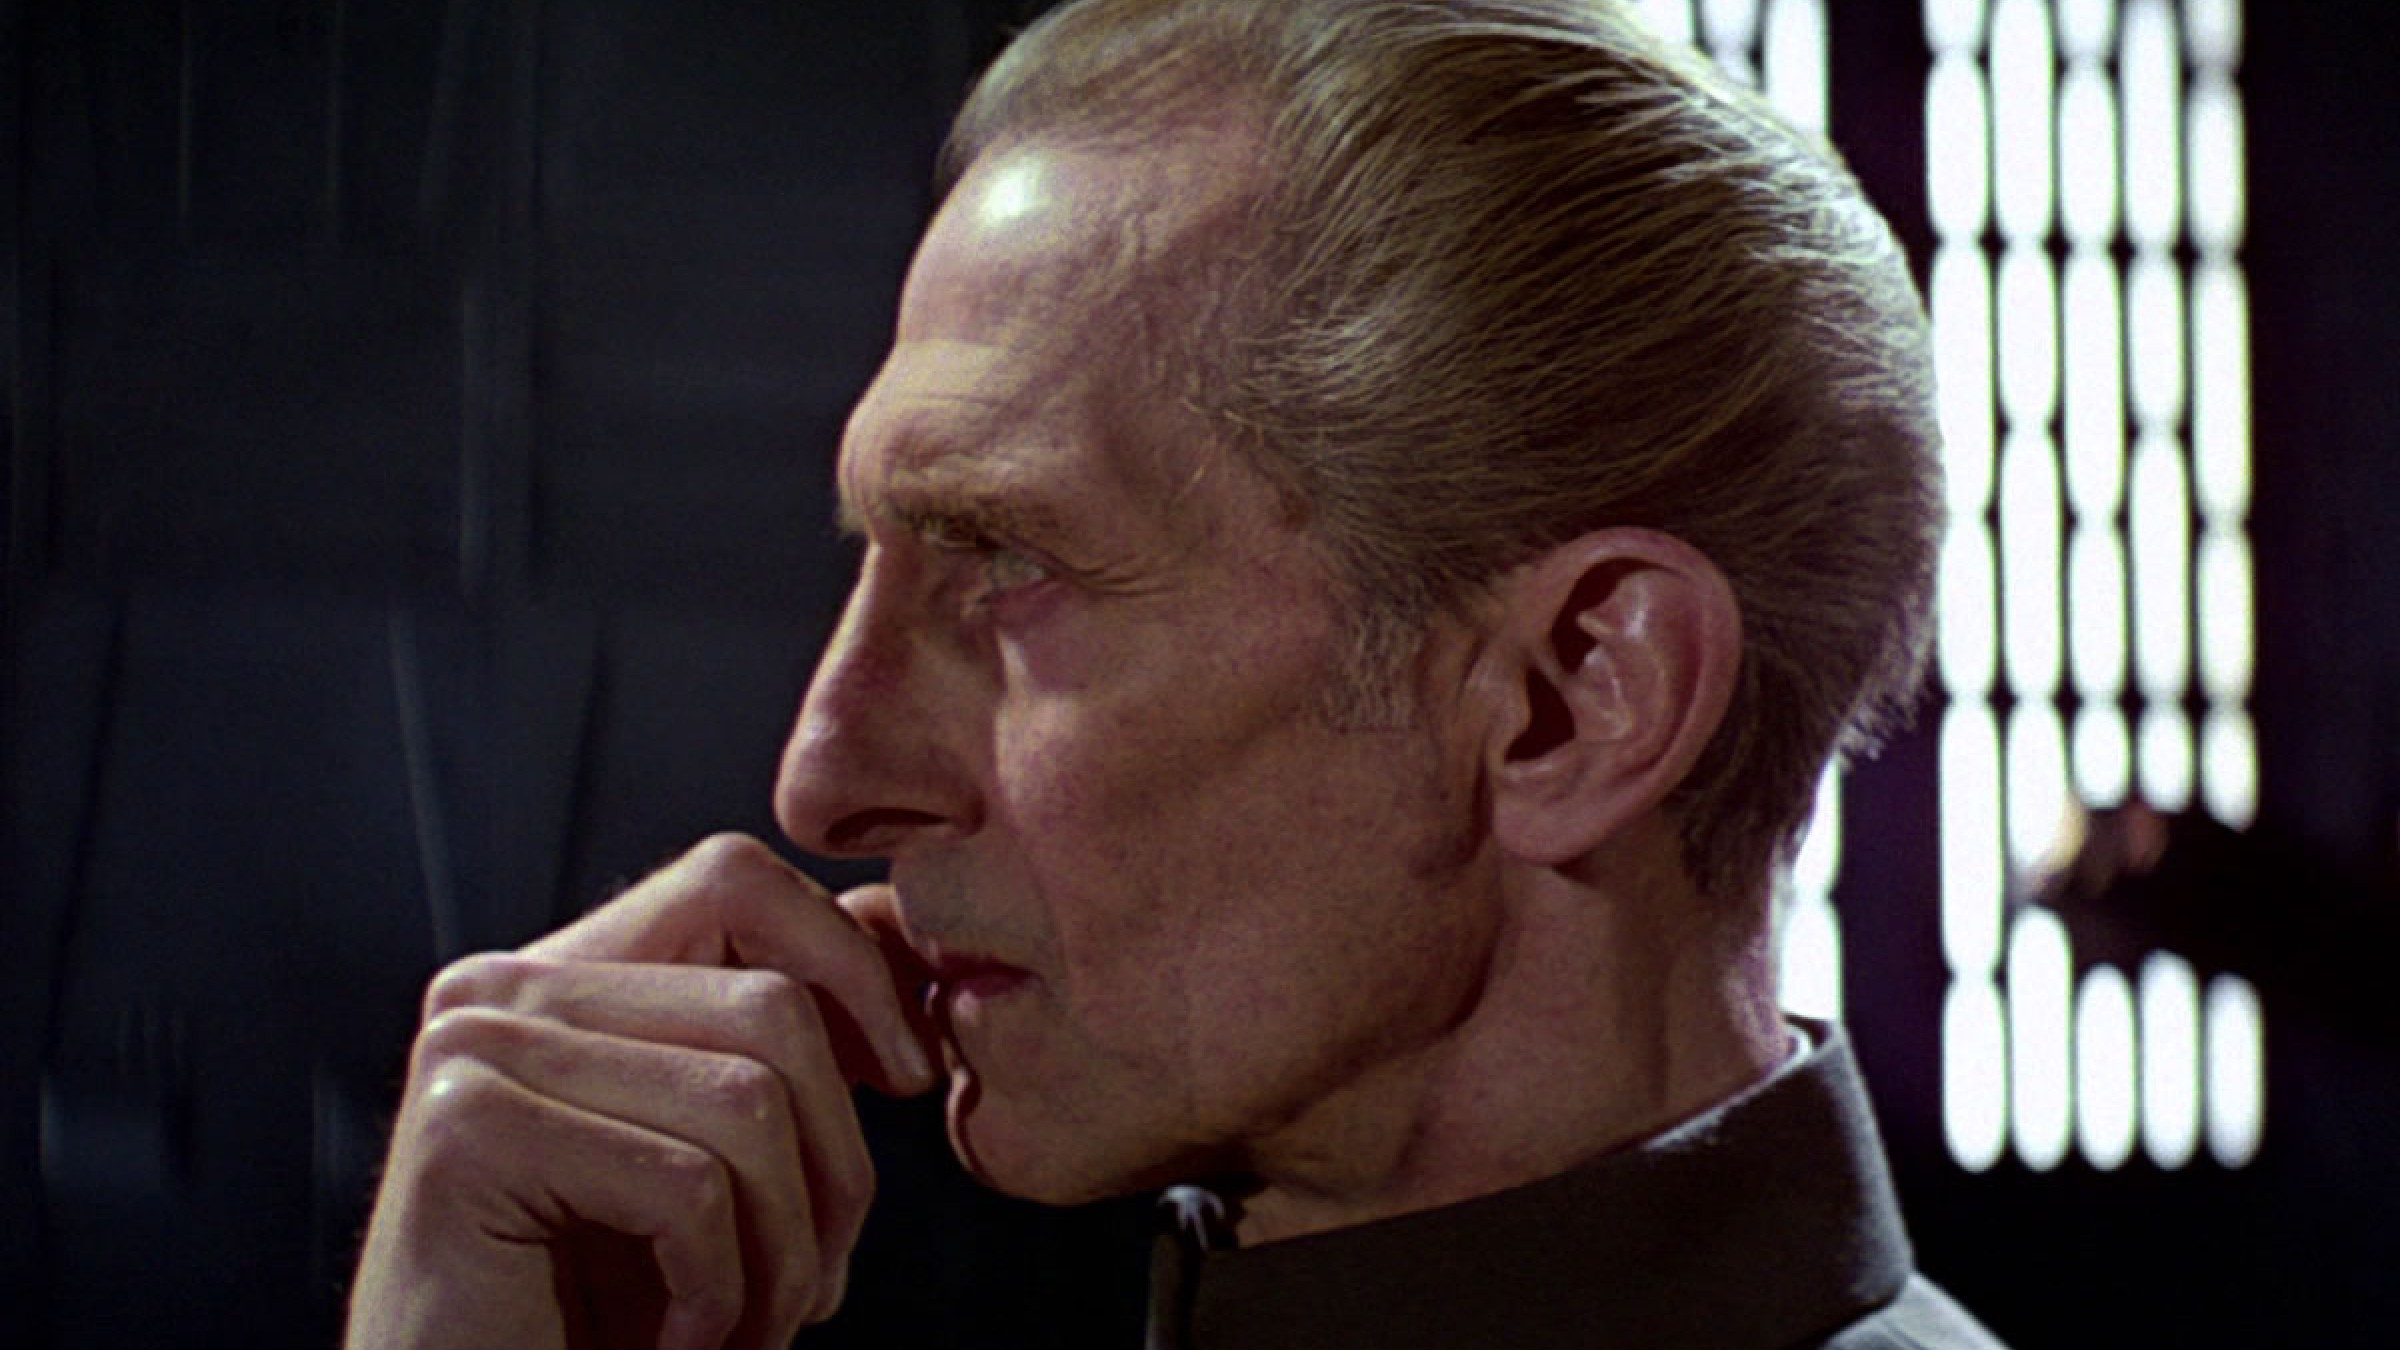 Watch How Ilm Brought Grand Moff Tarkin Back From The